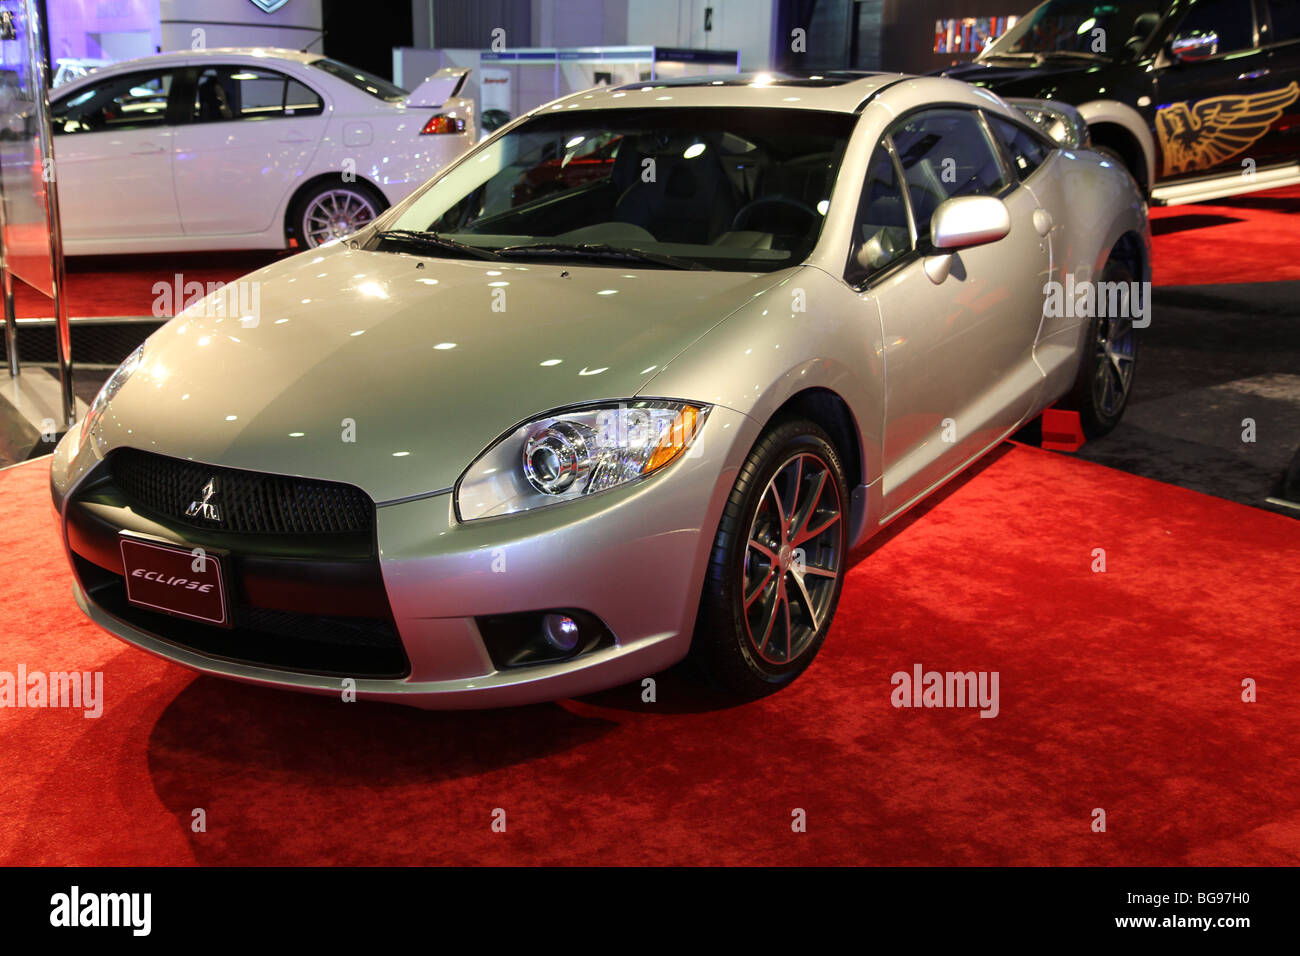 Perfect 2010 Mitsubishi Eclipse Coupe   Stock Image